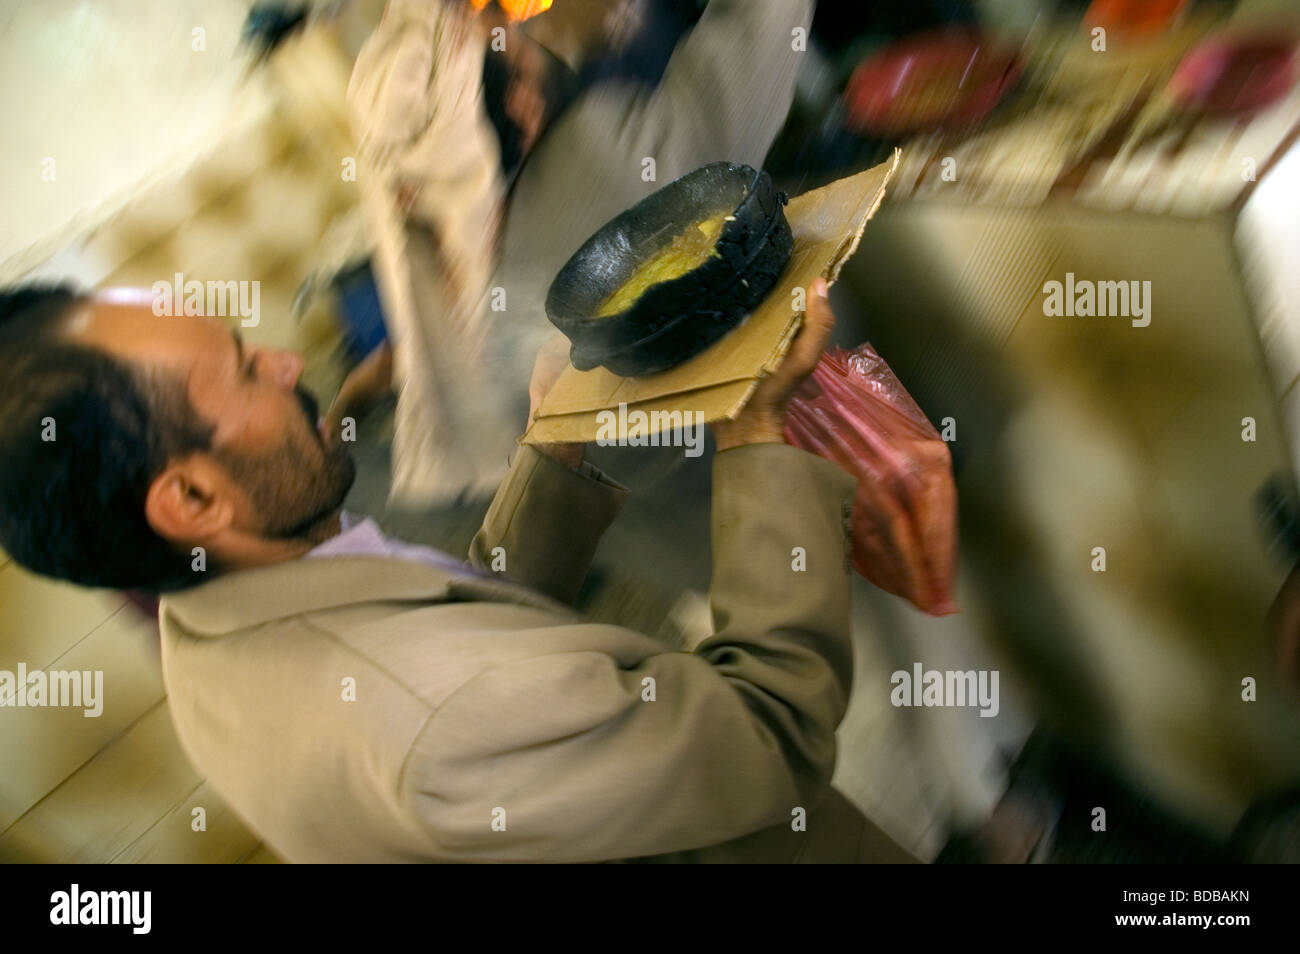 A waiter carries a Yemeni traditional stewed meat dish known as 'Salta' at Humayda Salta Restaurant located - Stock Image